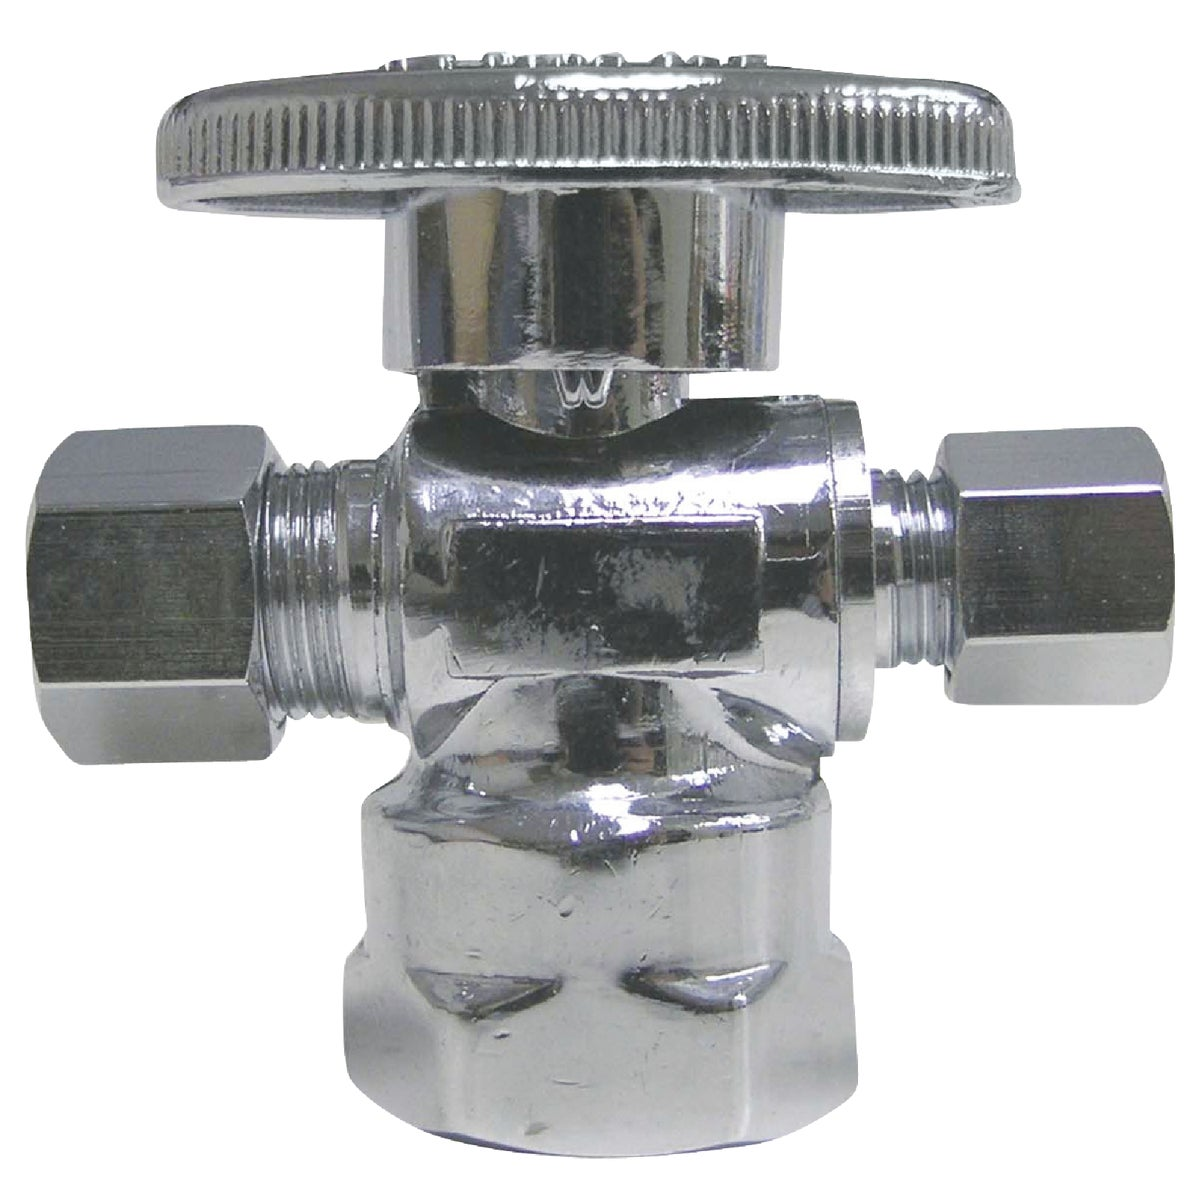 1/2FIPX3/8X1/4 SO VALVE - LFPBQT-118 by Watts Regulator Co